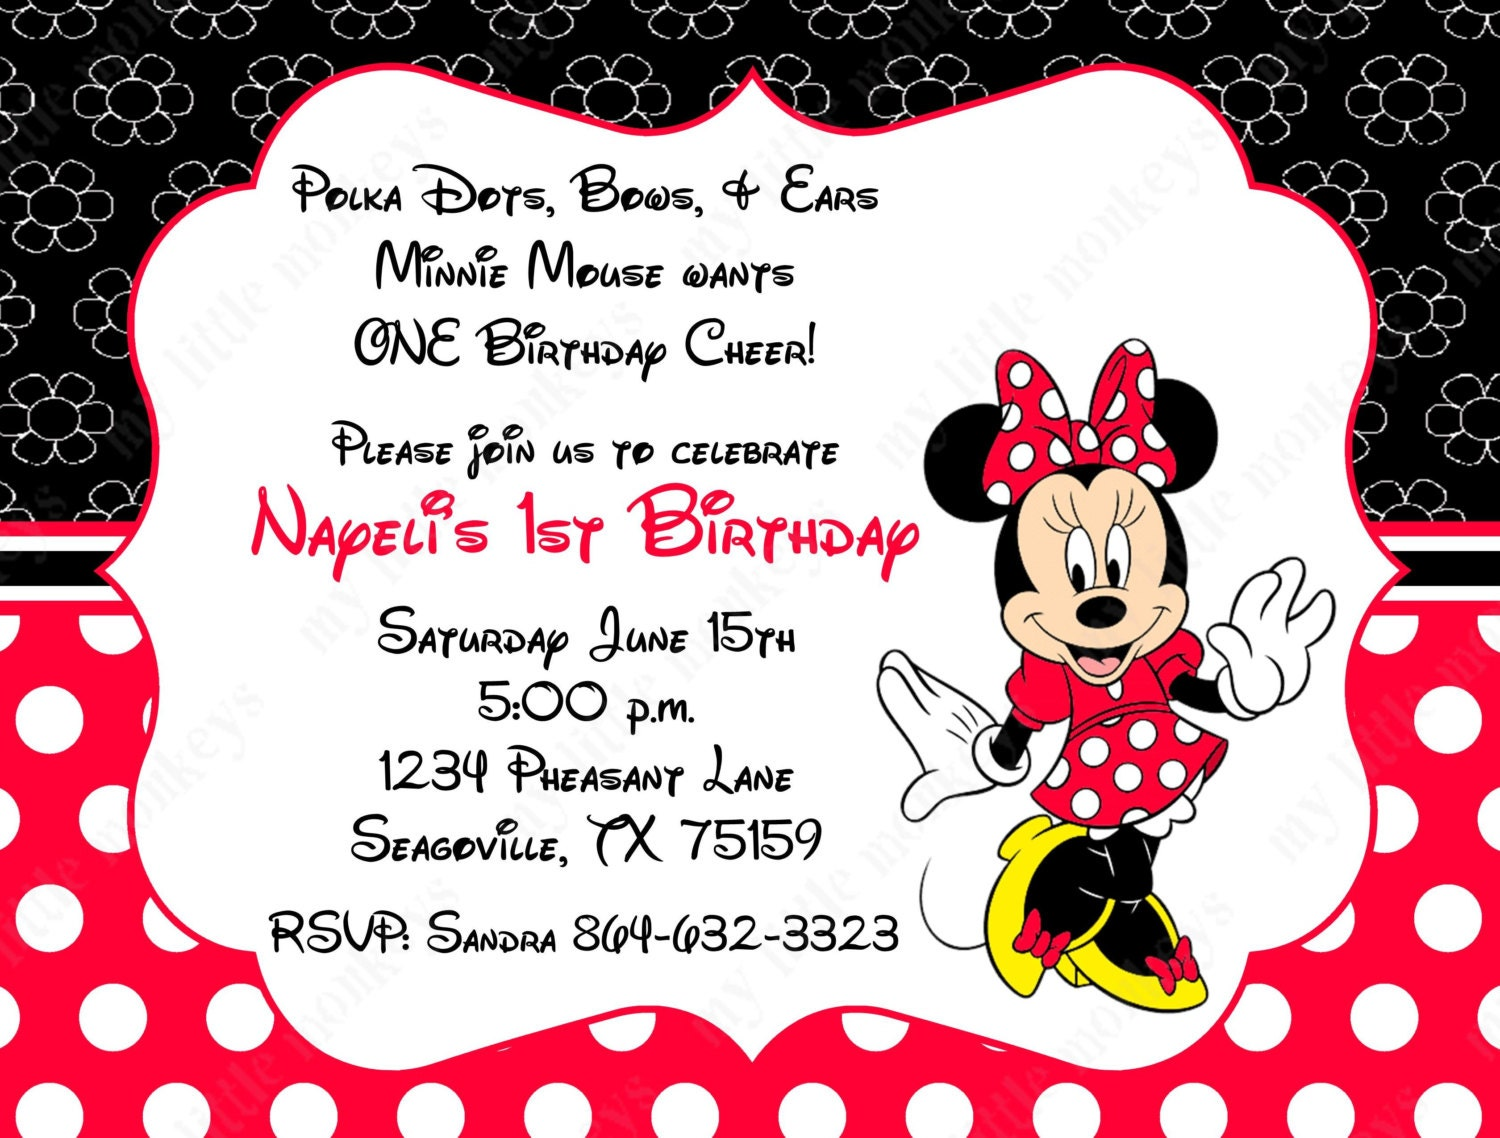 Minnie Mouse Invitations Etsy as beautiful invitations template